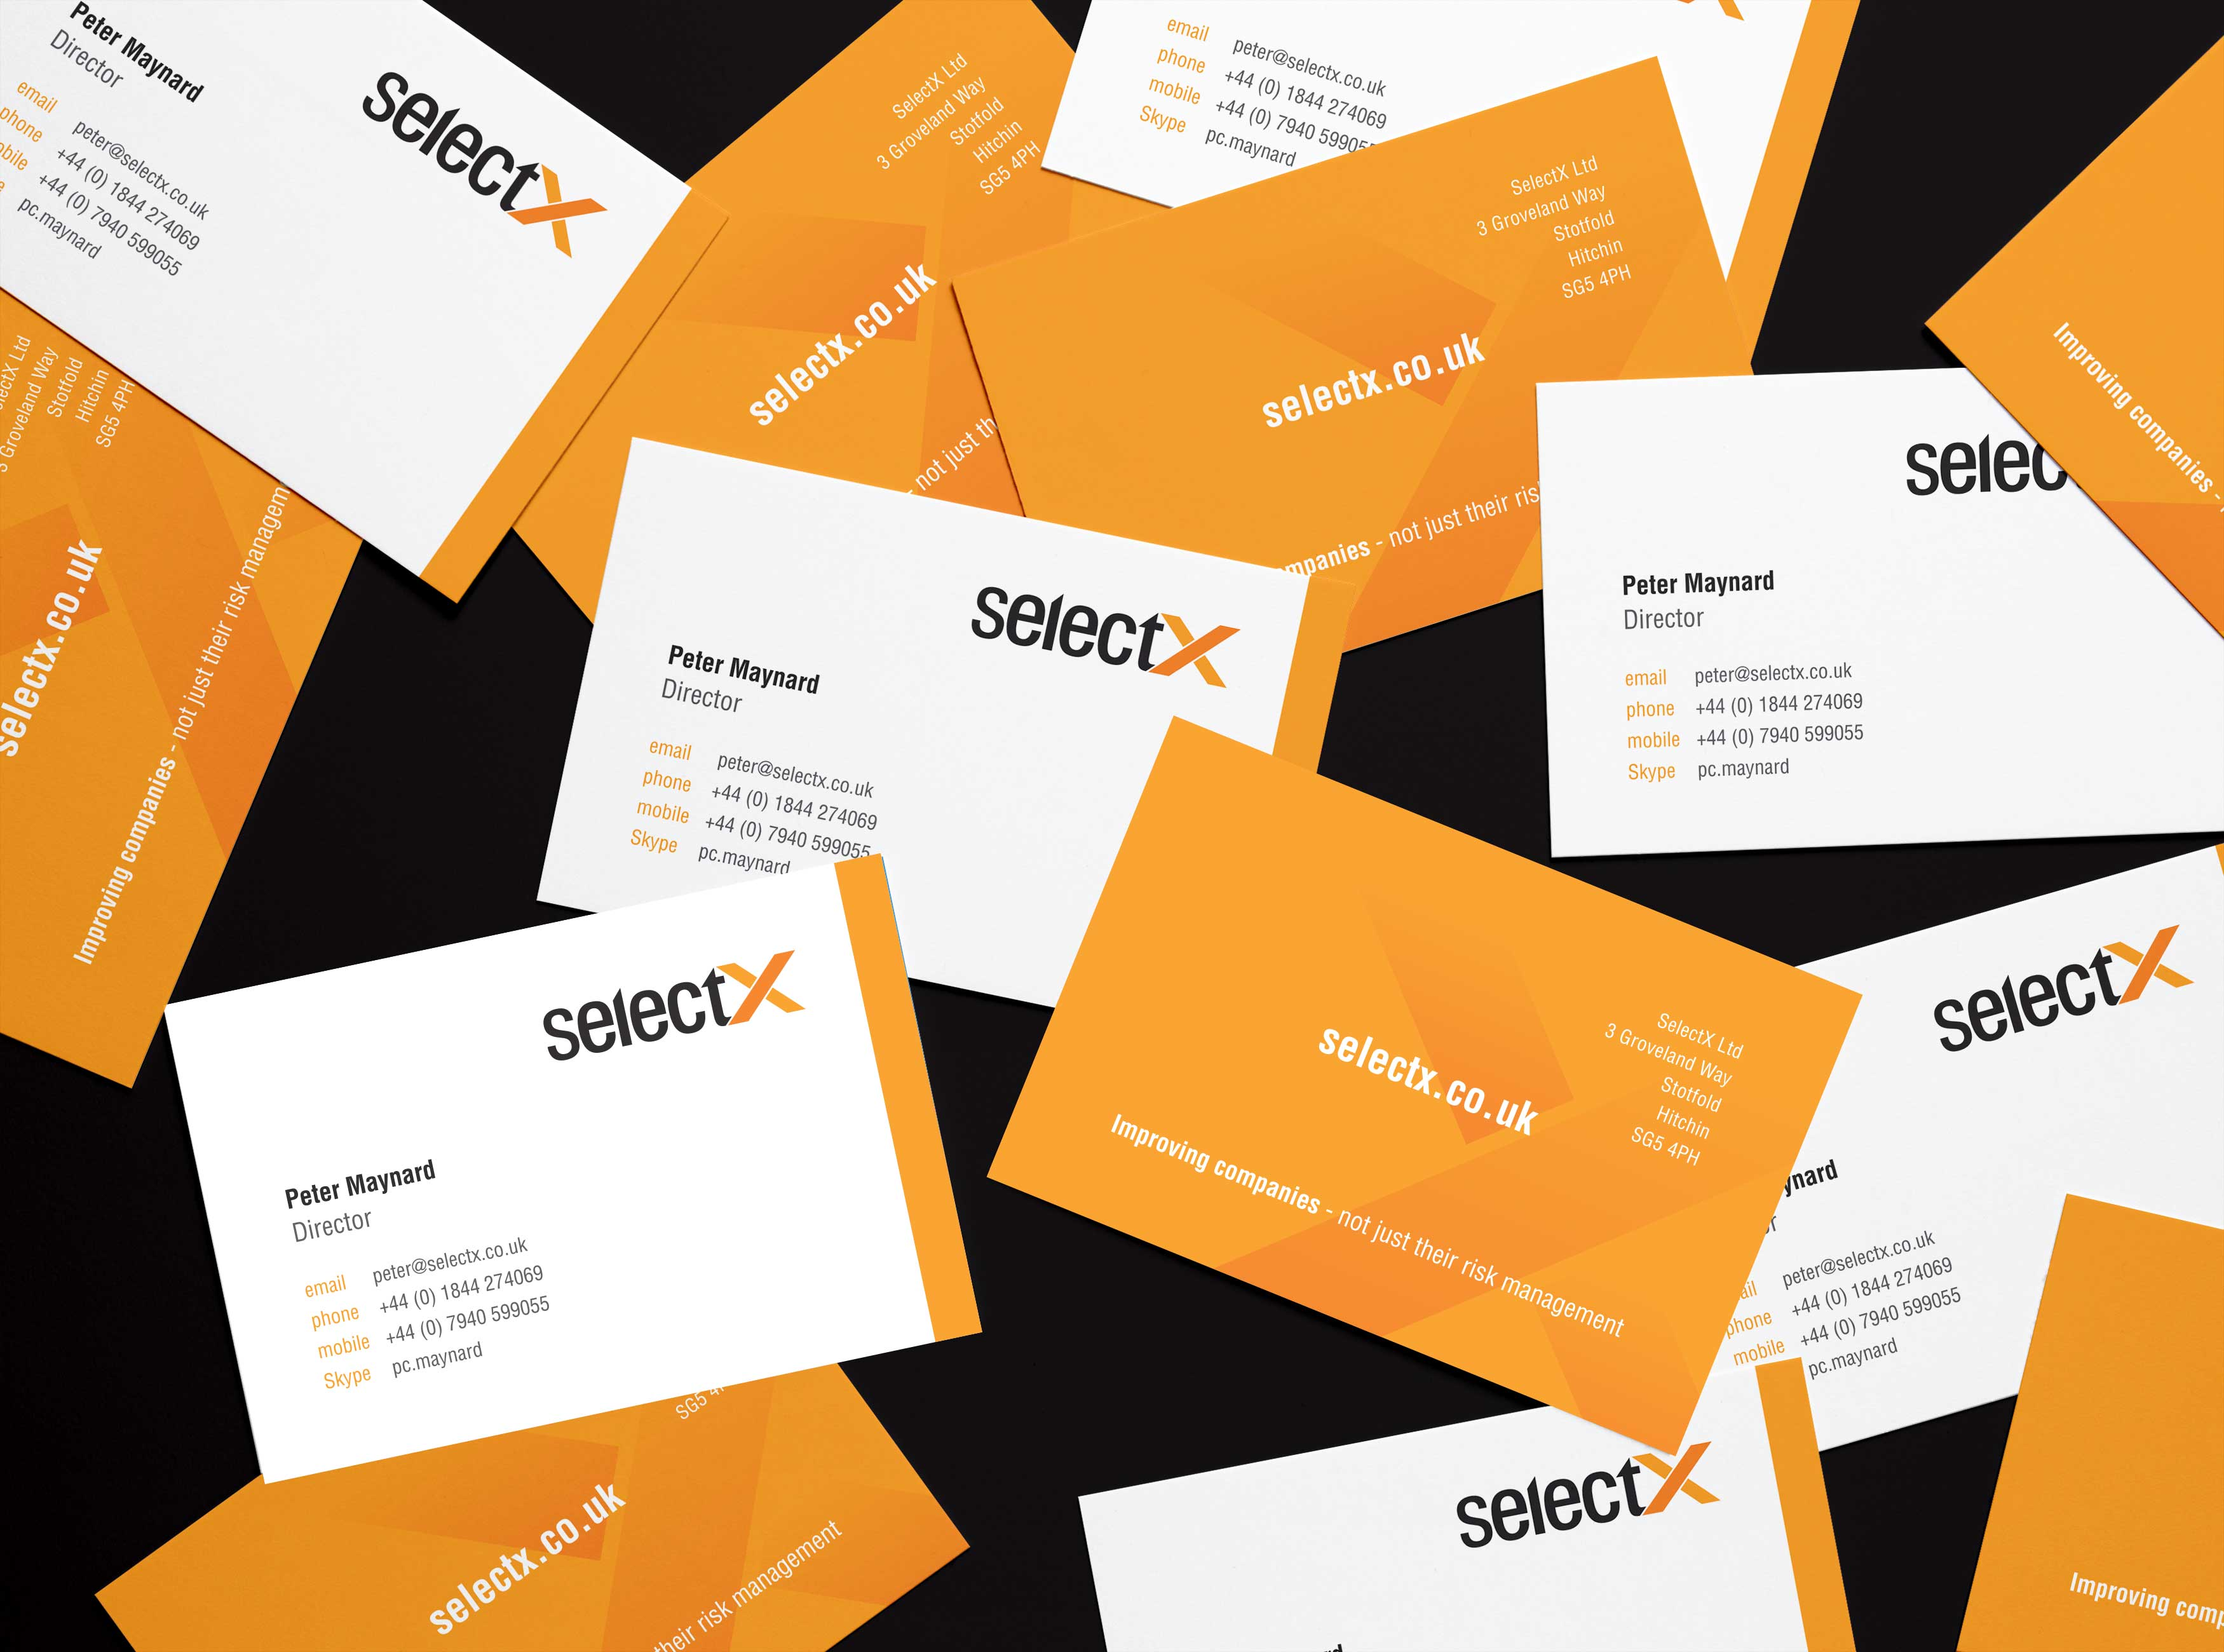 SelectX business cards